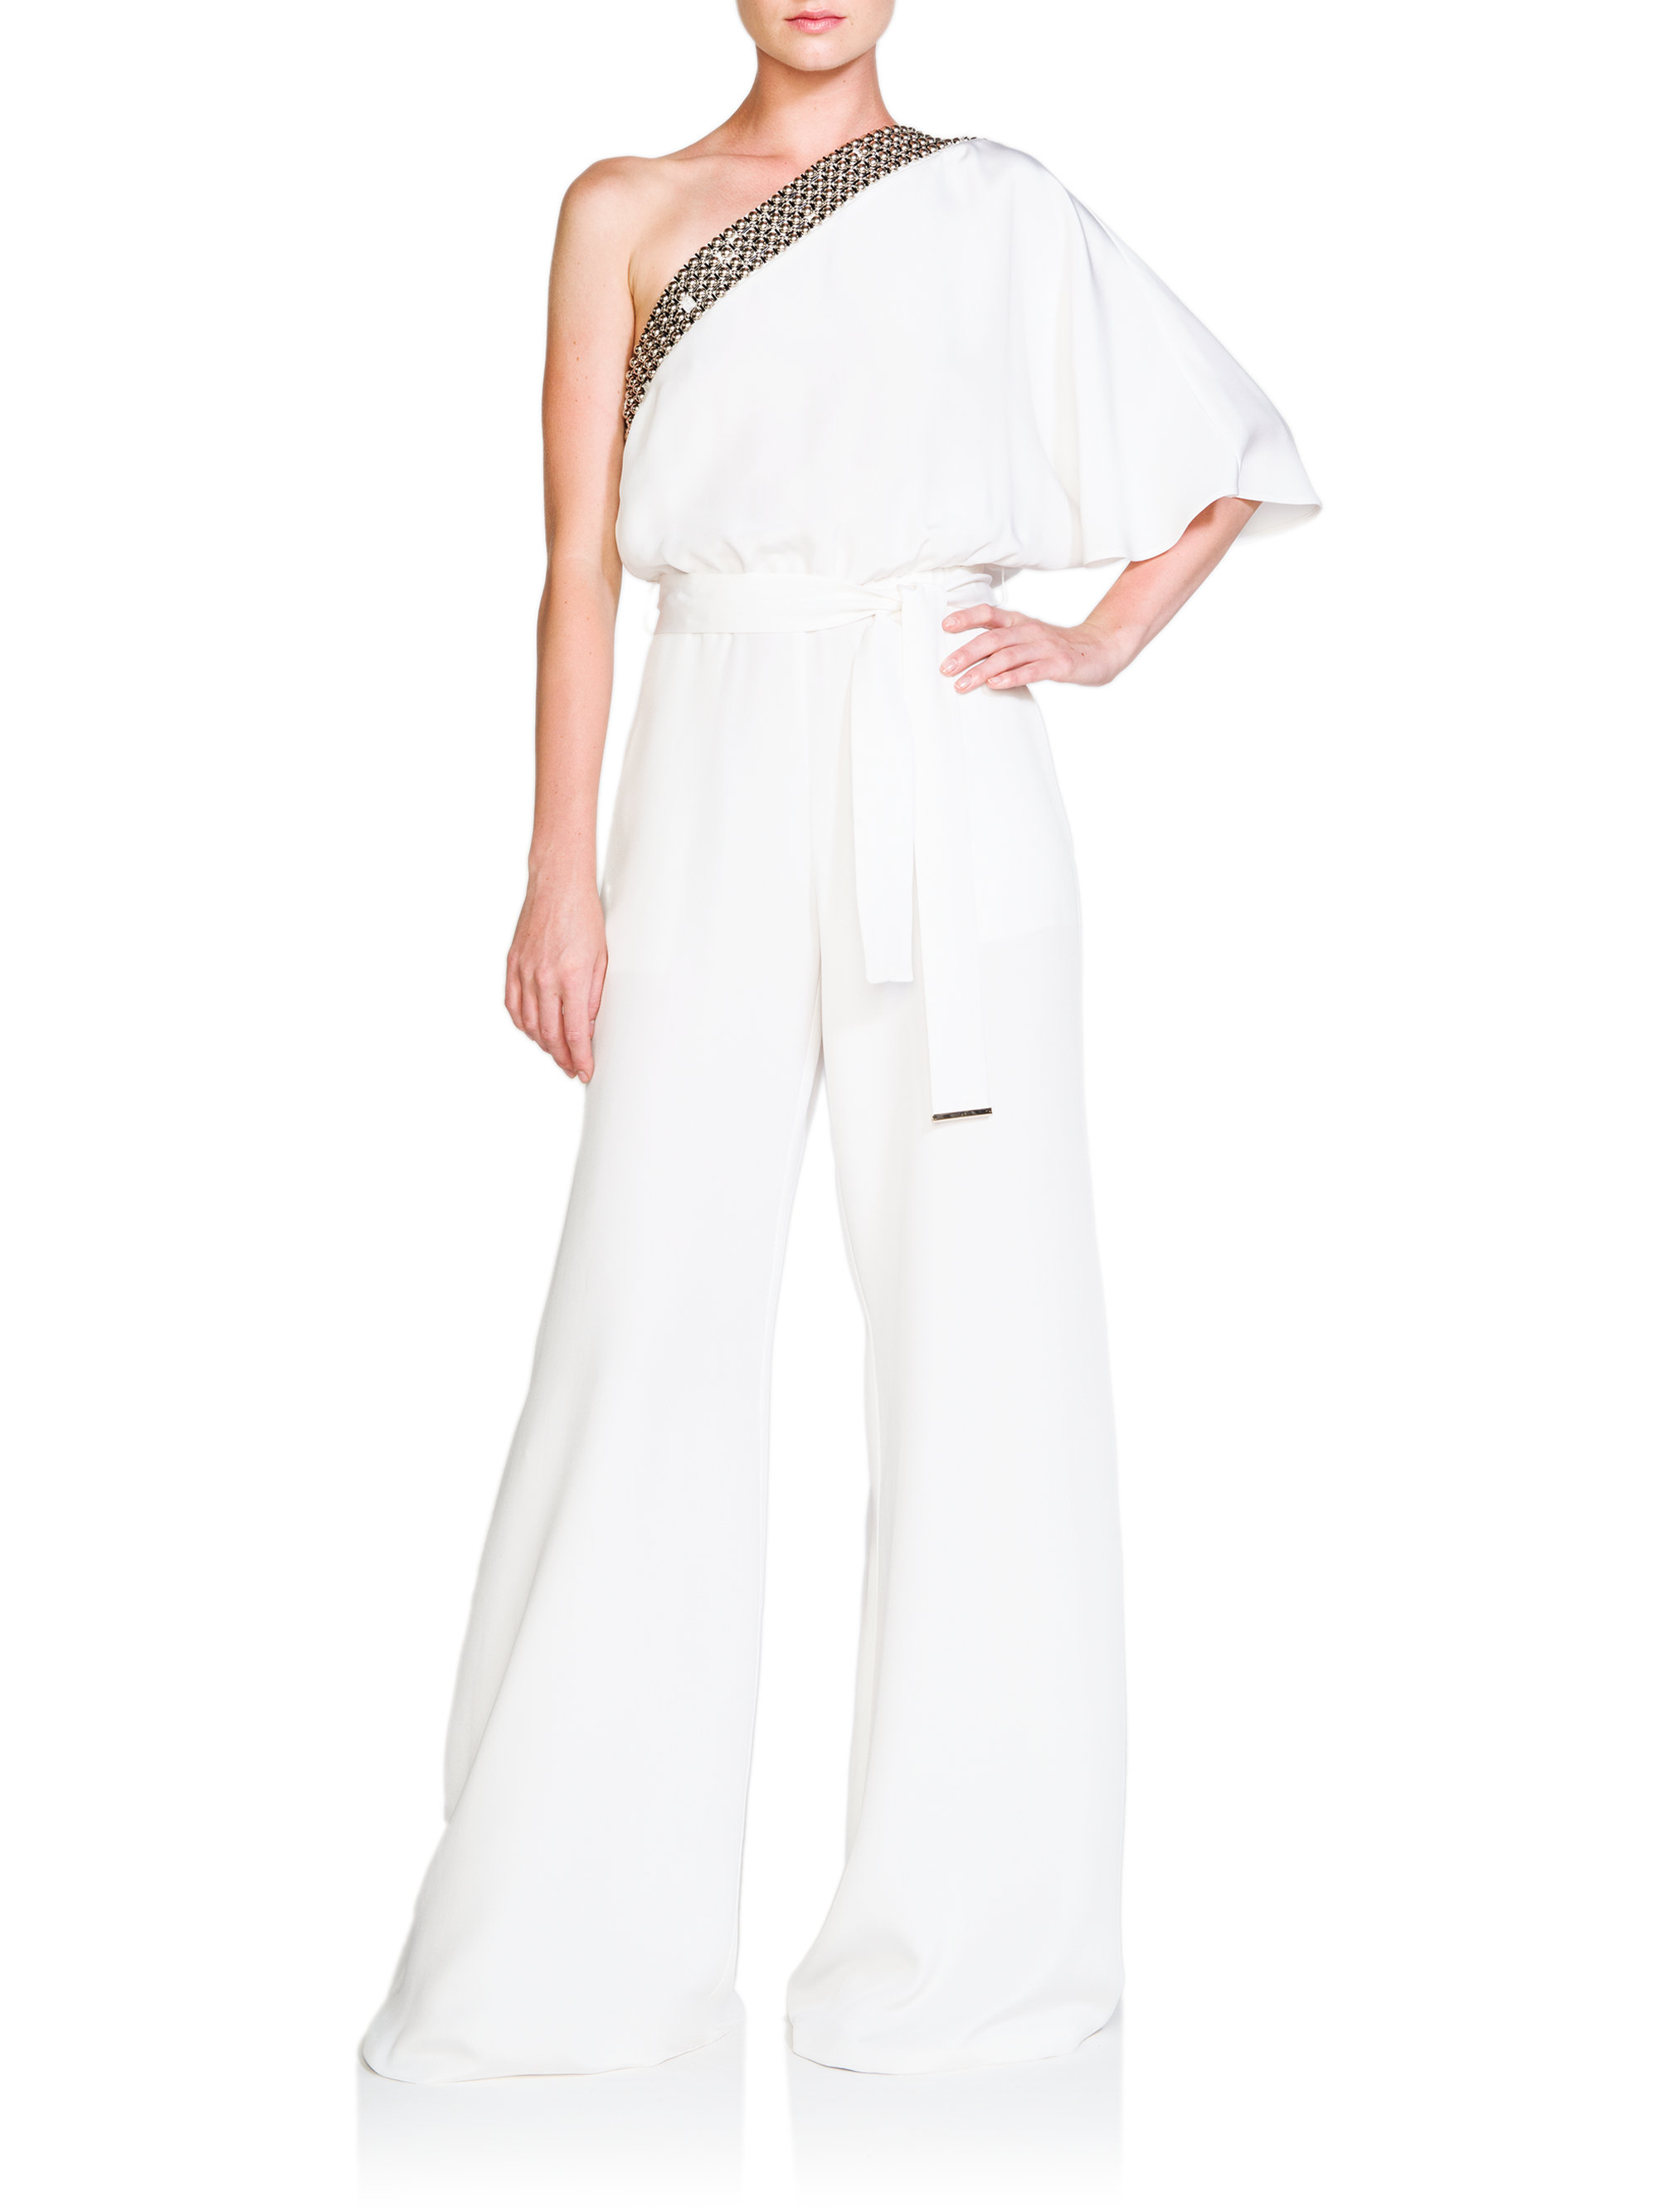 Emilio pucci Studded One-Shoulder Silk Jumpsuit in White | Lyst